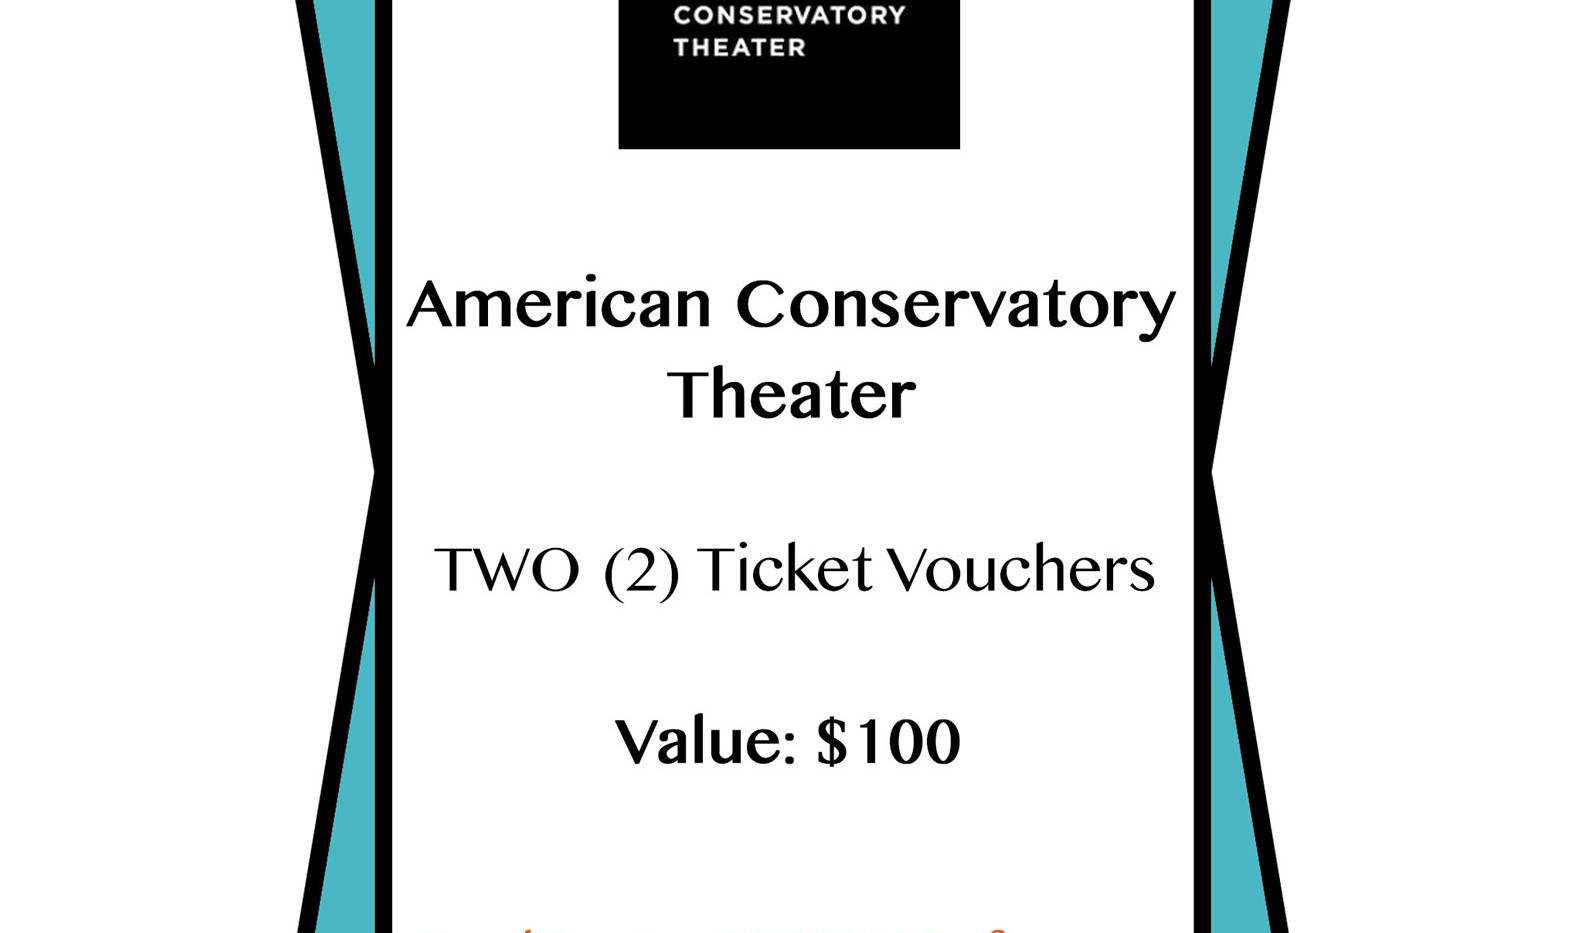 American-Conservatory-Theater.jpg